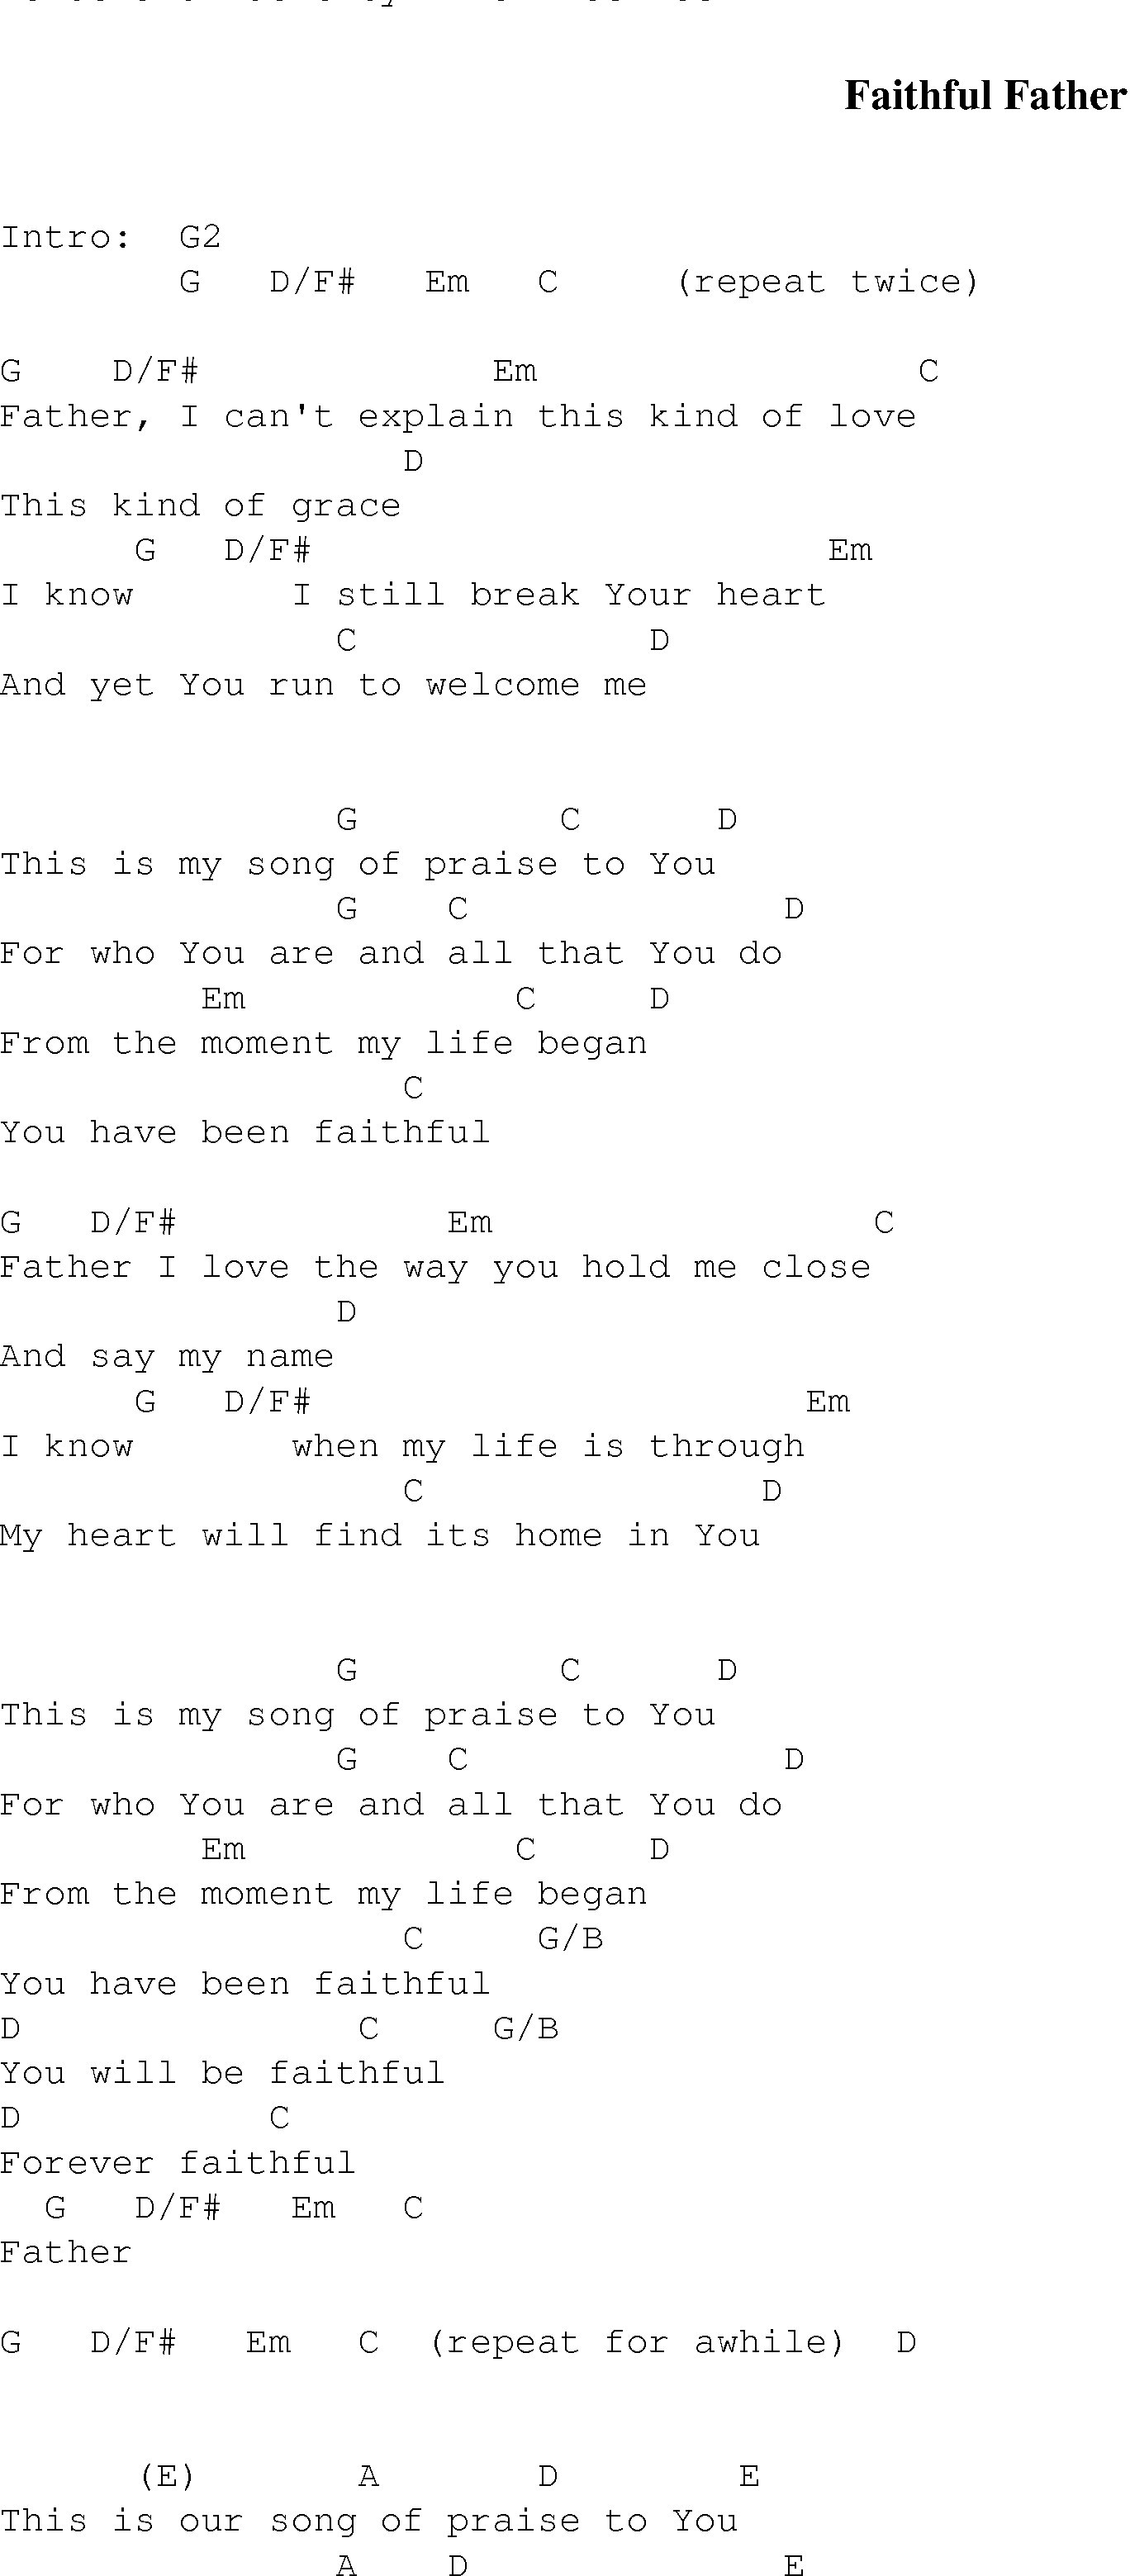 Faithful father christian gospel song lyrics and chords gospel song faithfulfather lyrics and chords hexwebz Image collections